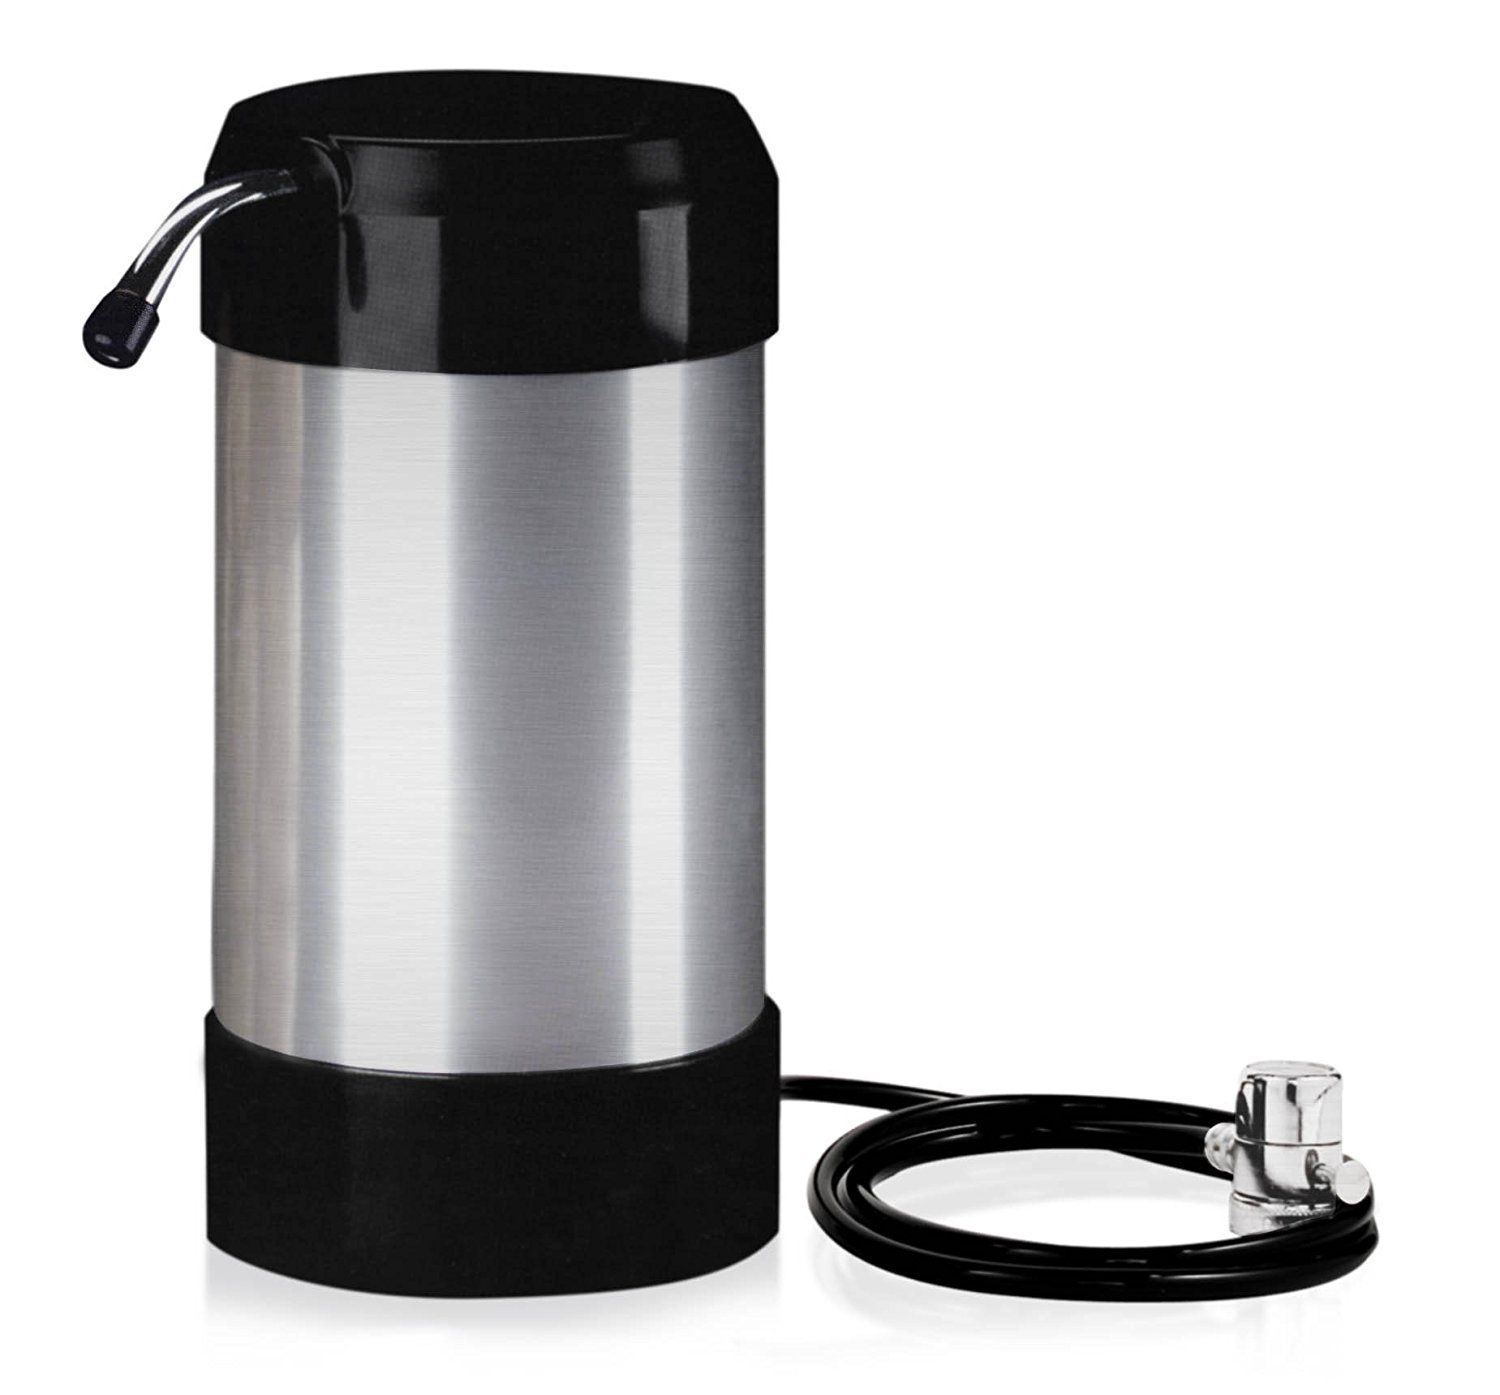 9 Best Countertop Water Filter Plus 1 To Avoid 2020 Buyers Guide Countertop Water Filter Water Filter Water Filtration System